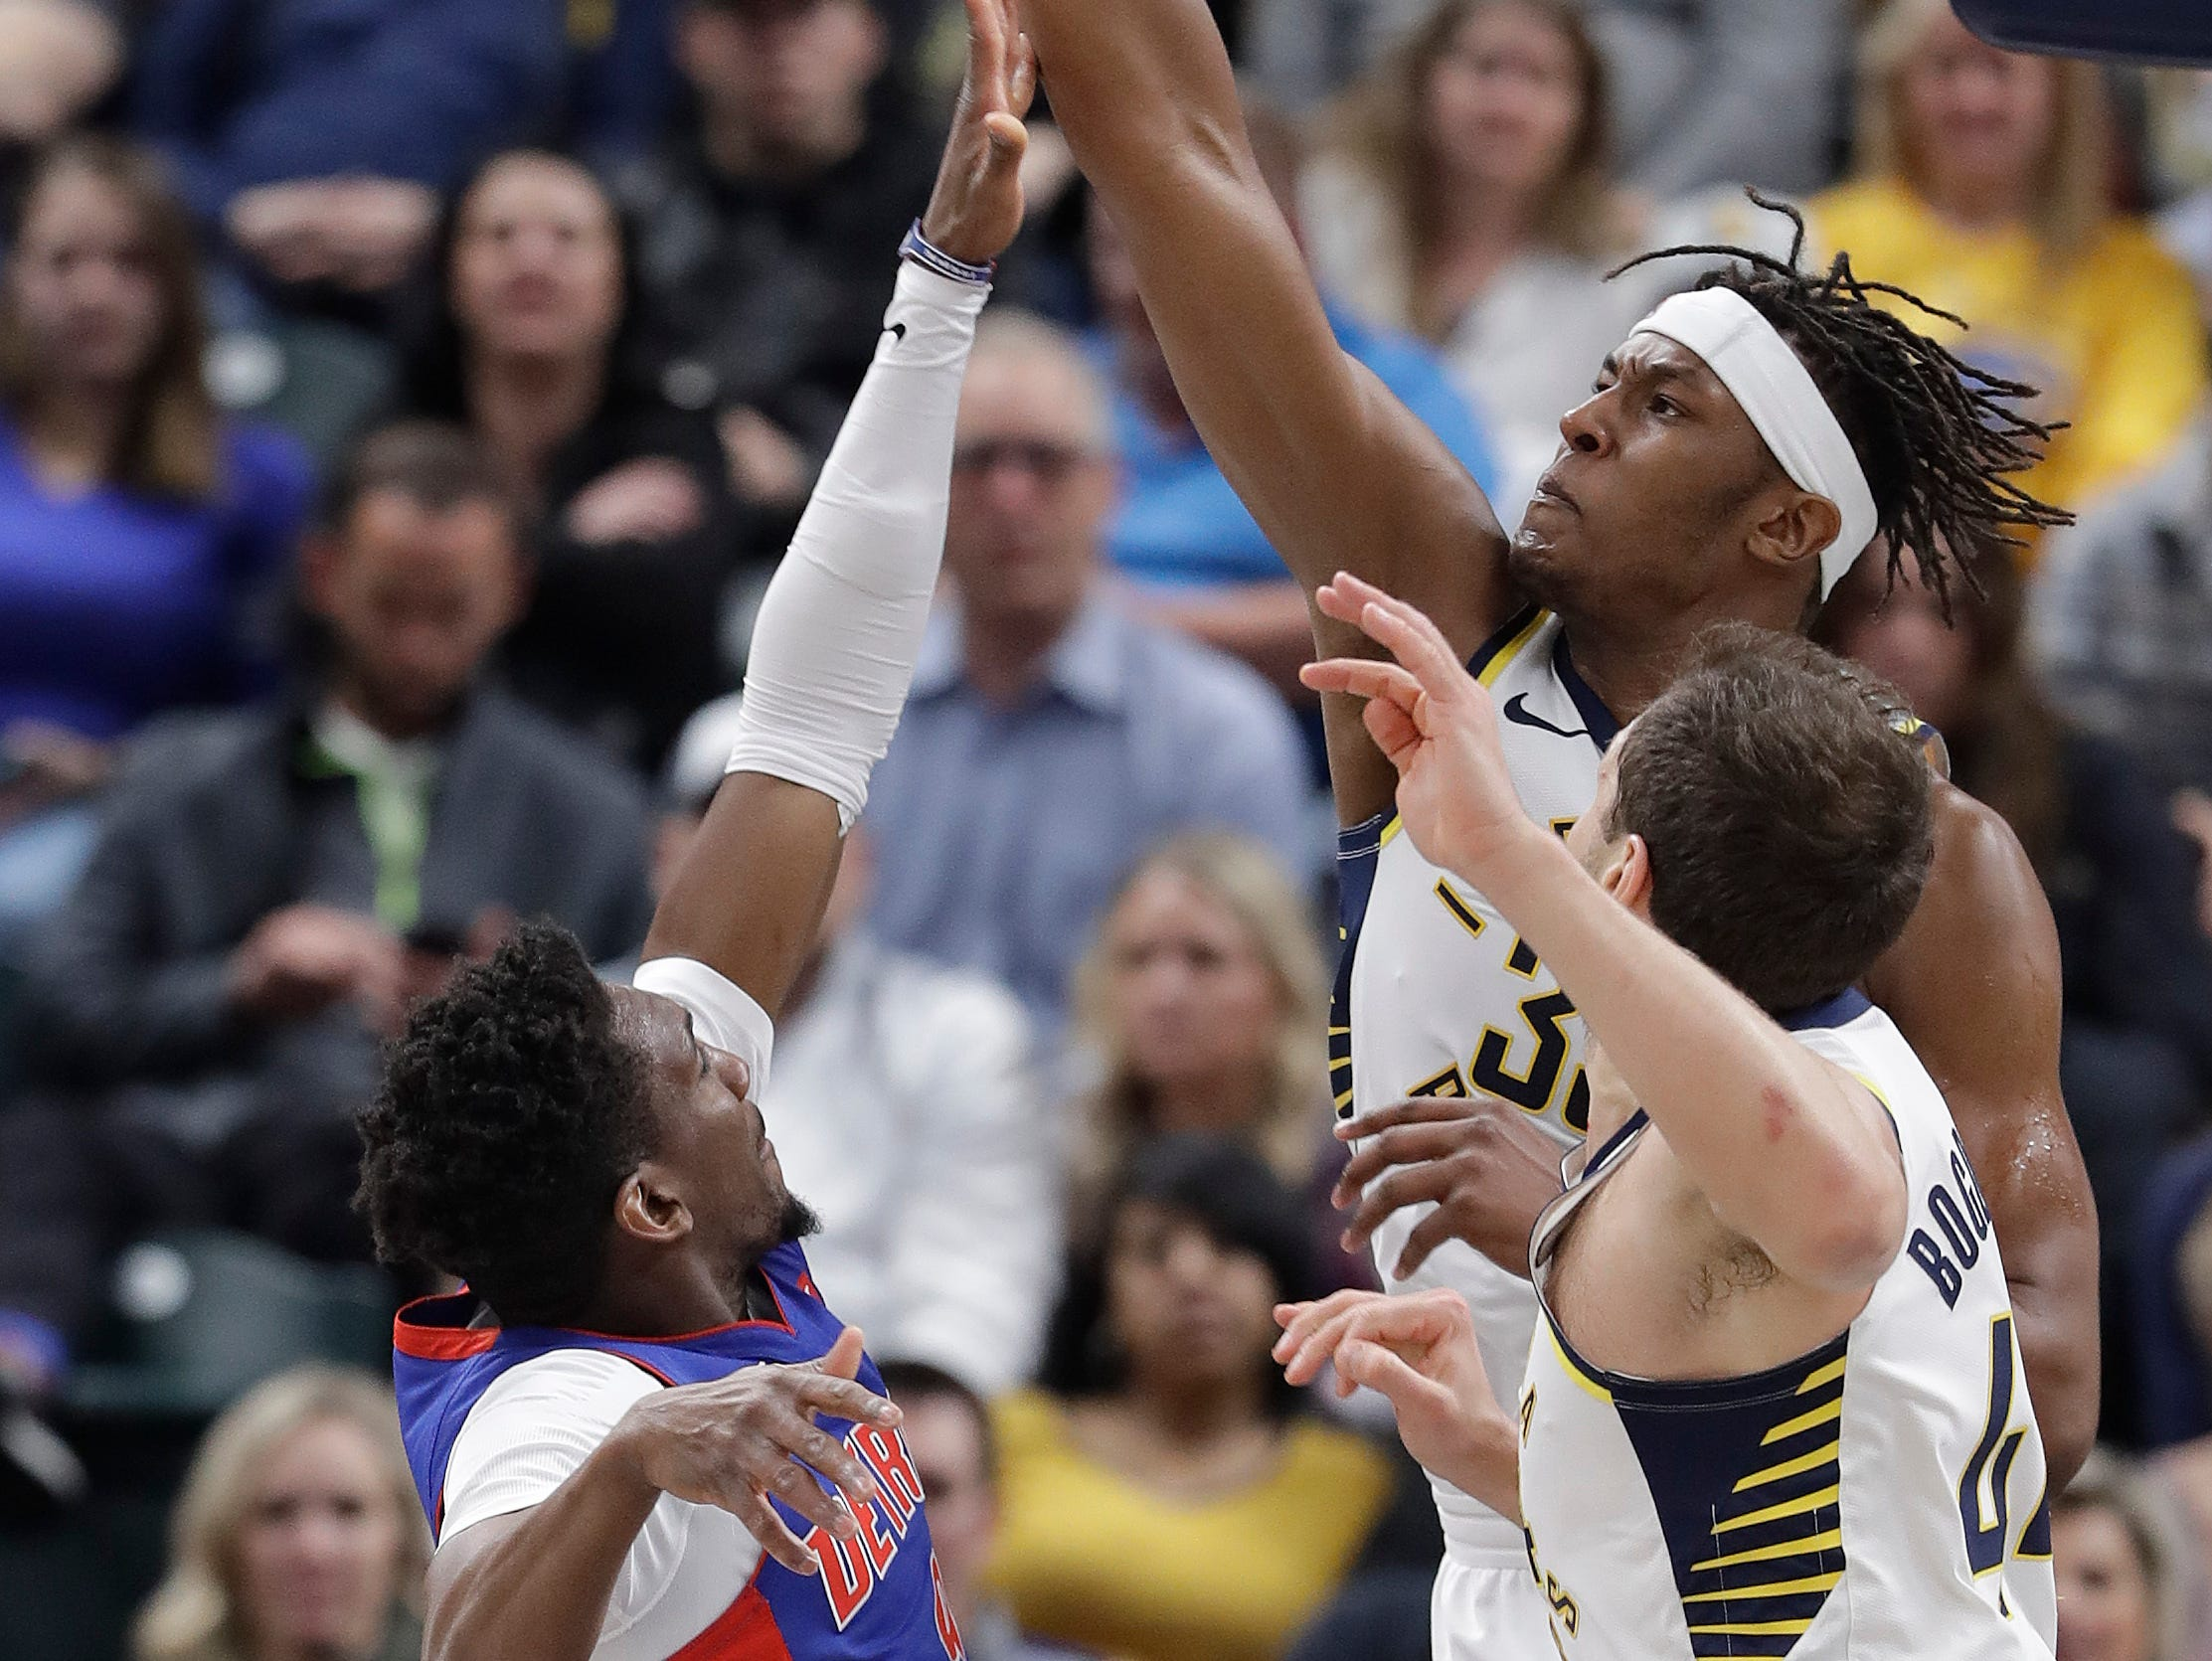 Indiana Pacers' Myles Turner (33) blocks the shot of Detroit Pistons' Langston Galloway (9) during the second half.